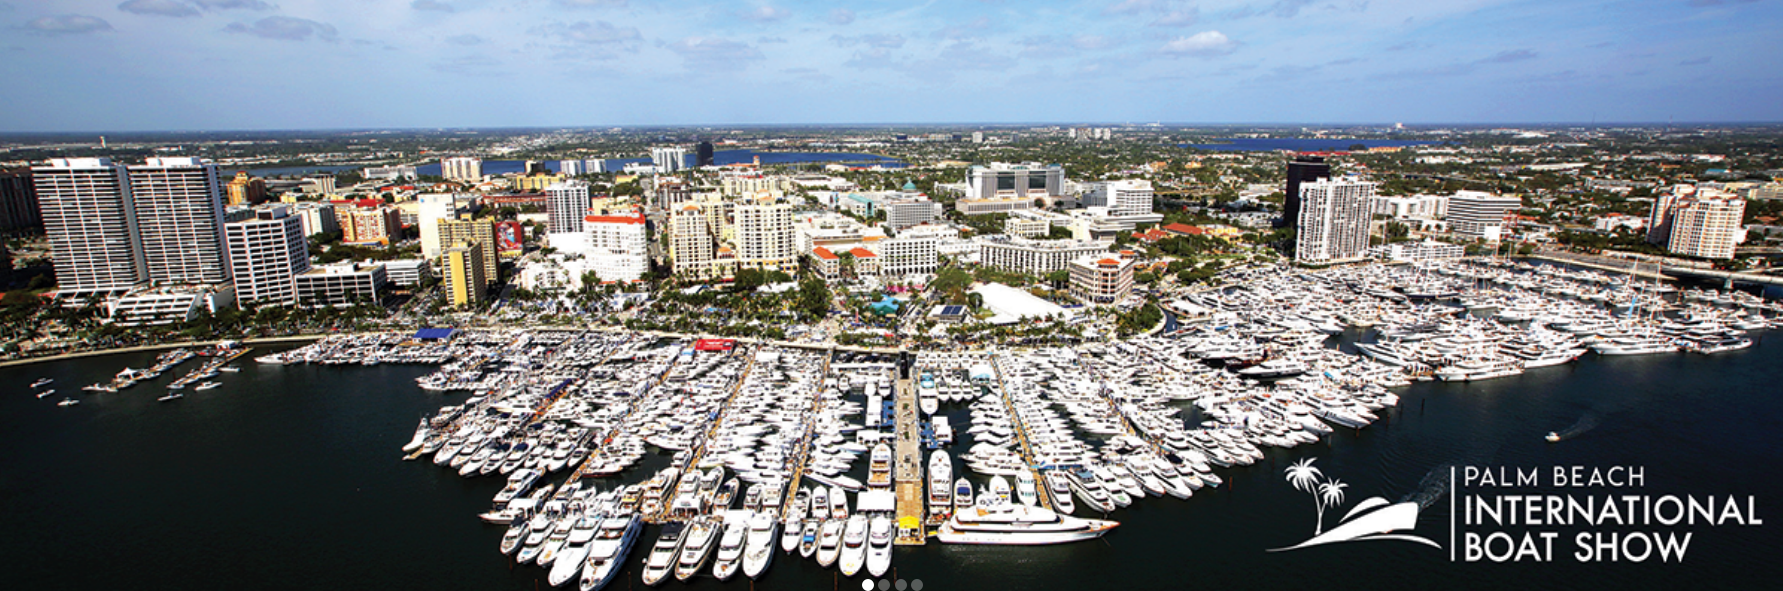 Palm Beach Boat Show Tickets